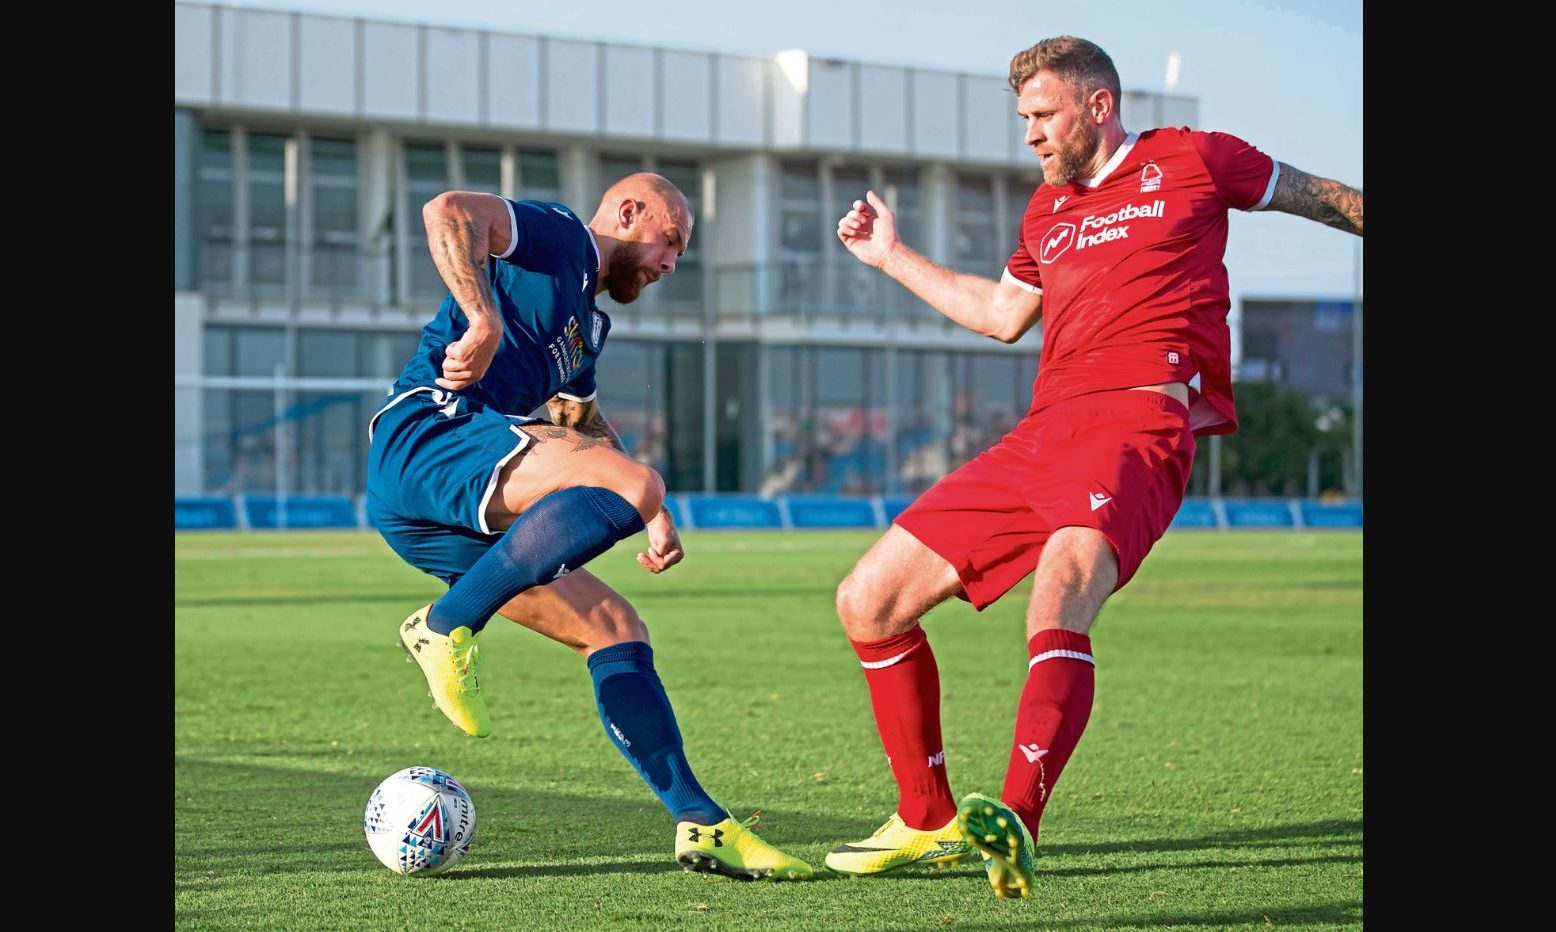 Jordon Forster evades a tackle in Spain as Dundee take on Nottingham Forest.